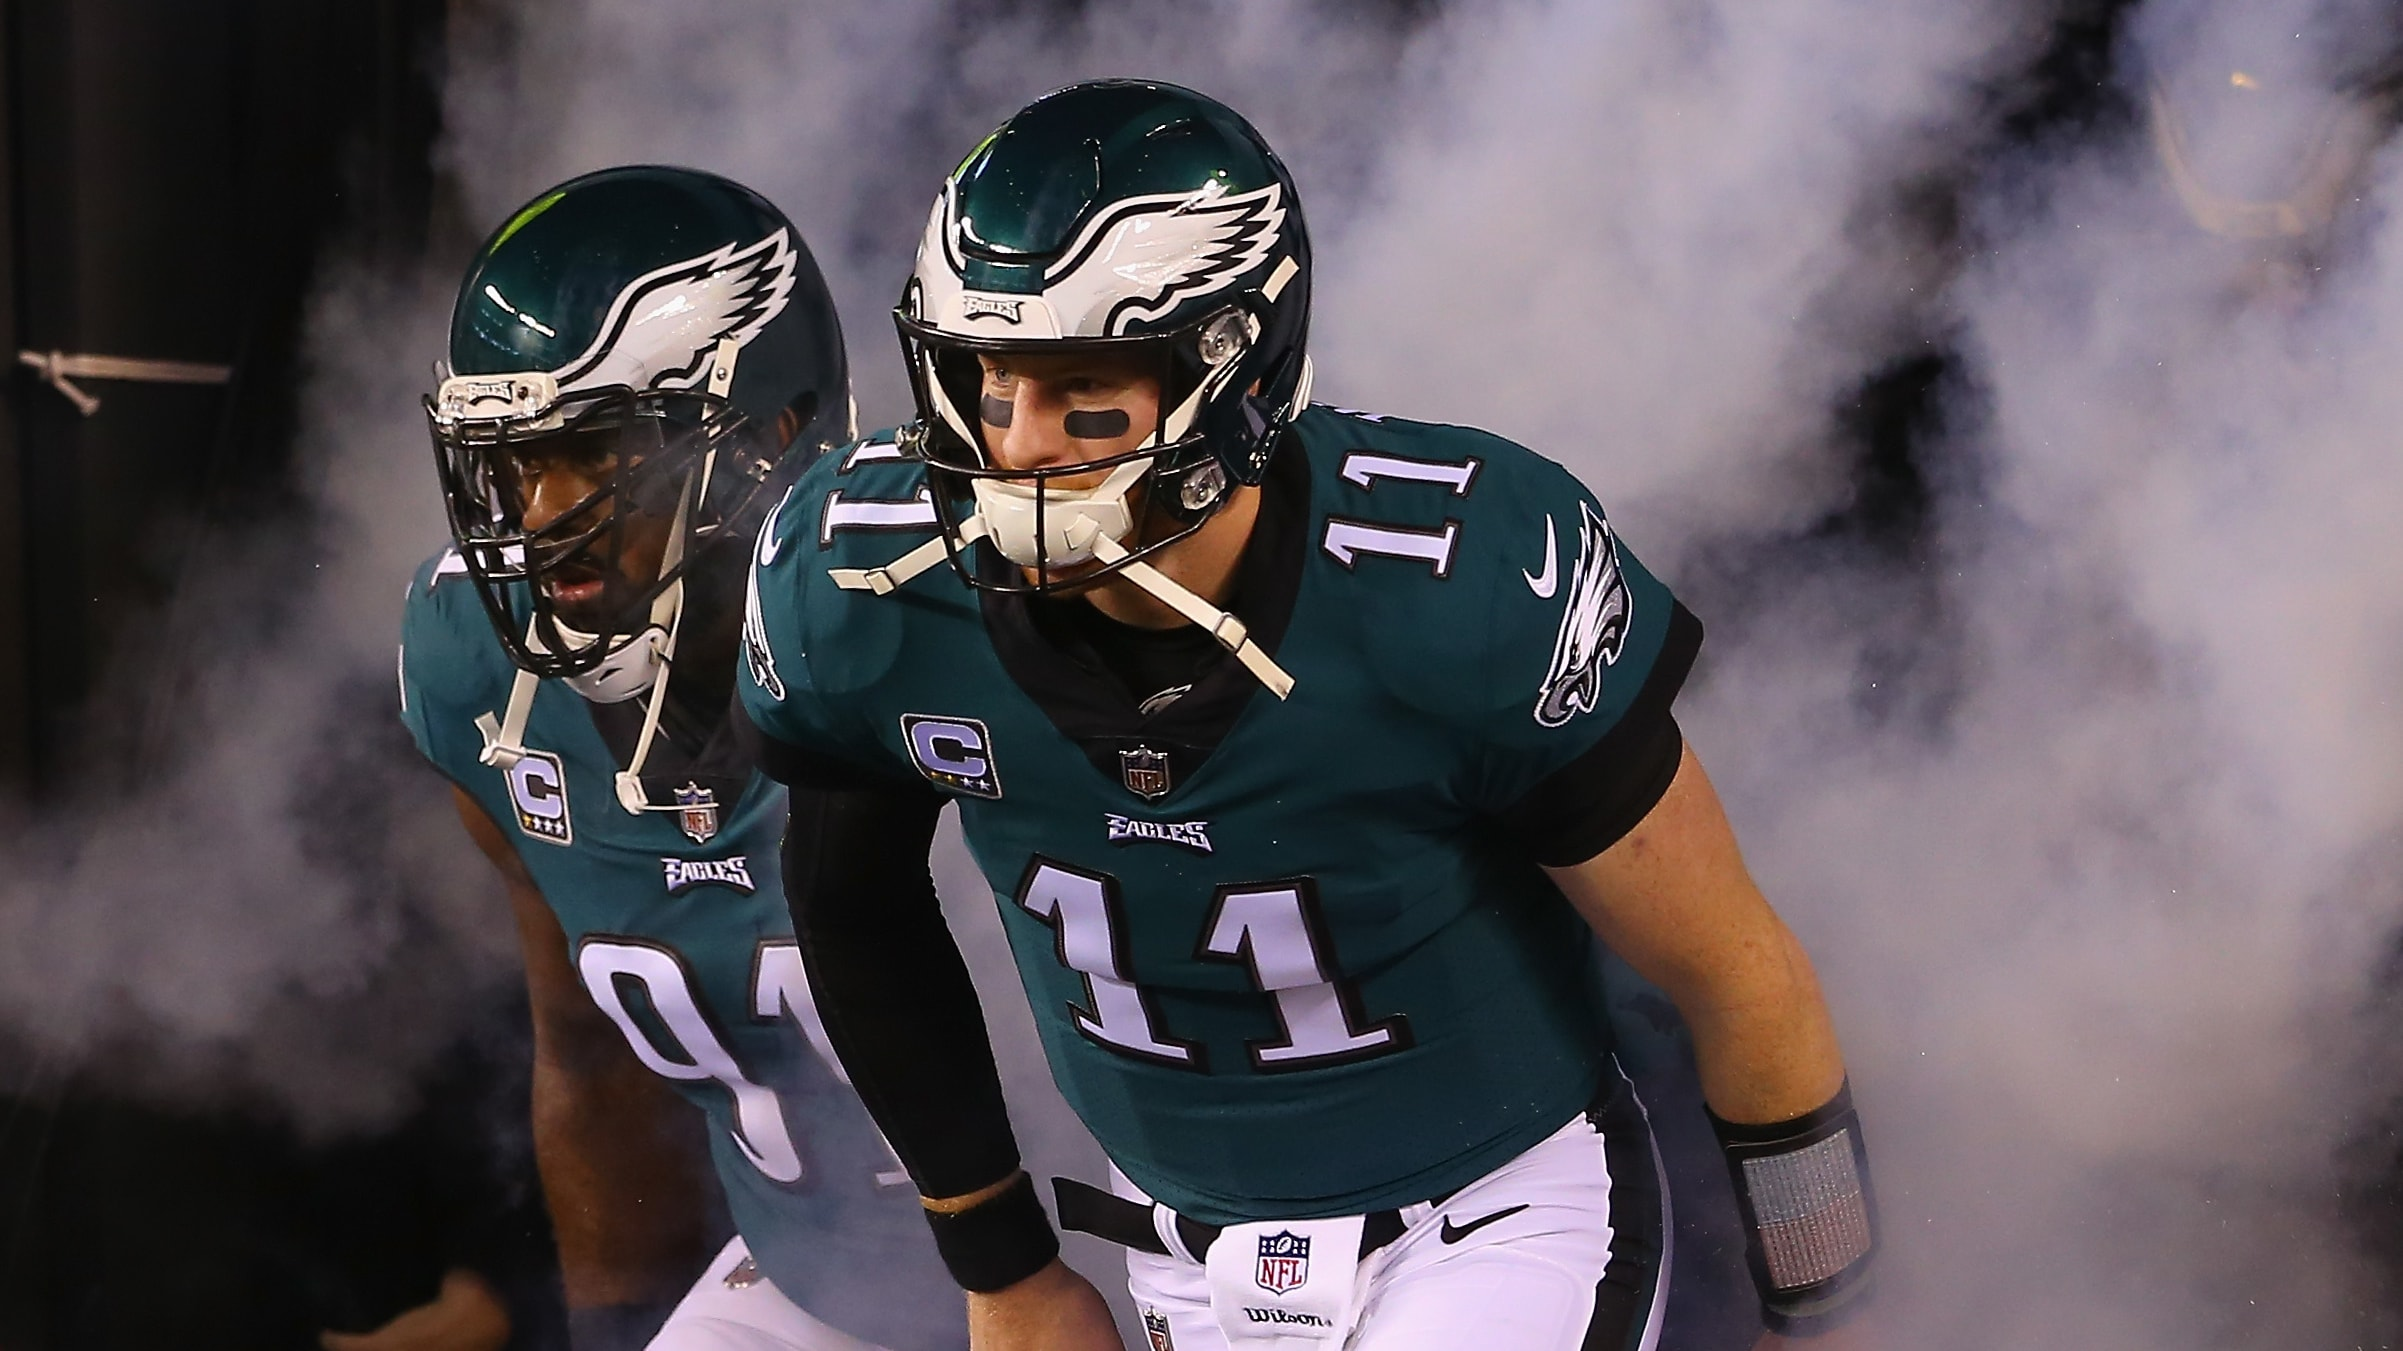 Carson Wentz's Back Injury Could Impact His Fantasy Value